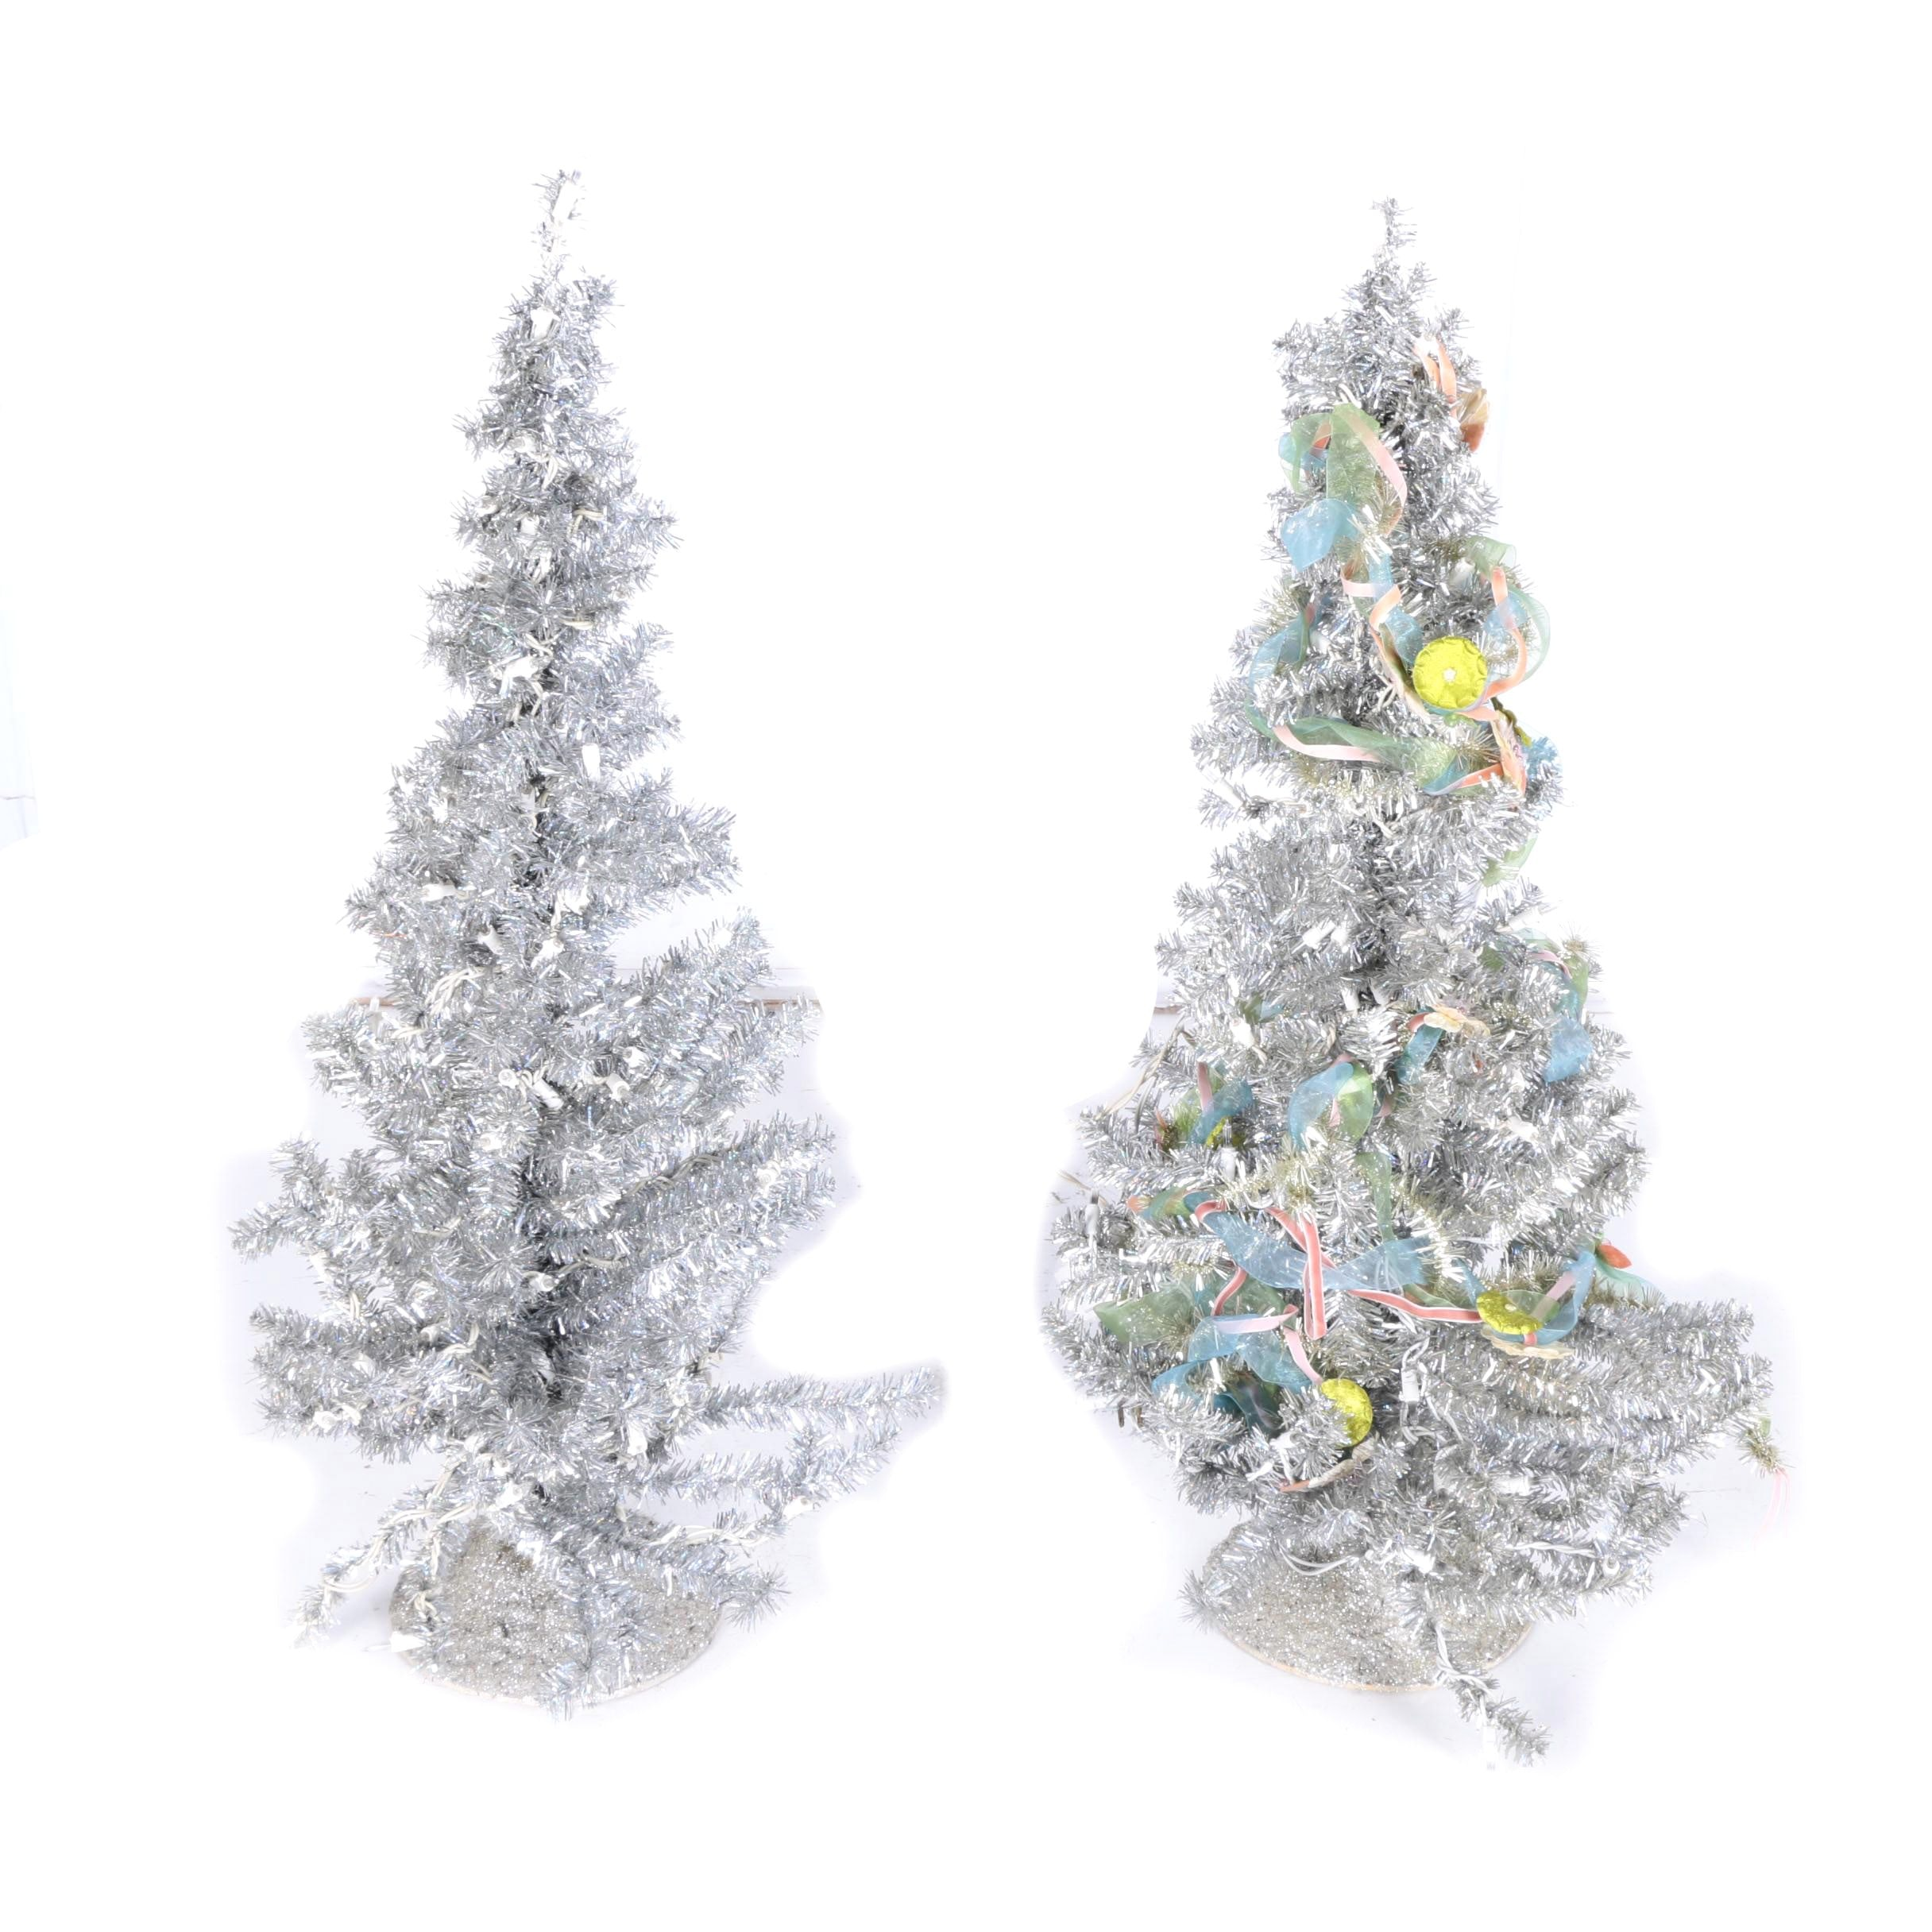 Pair of Silver Tinsel Christmas Trees